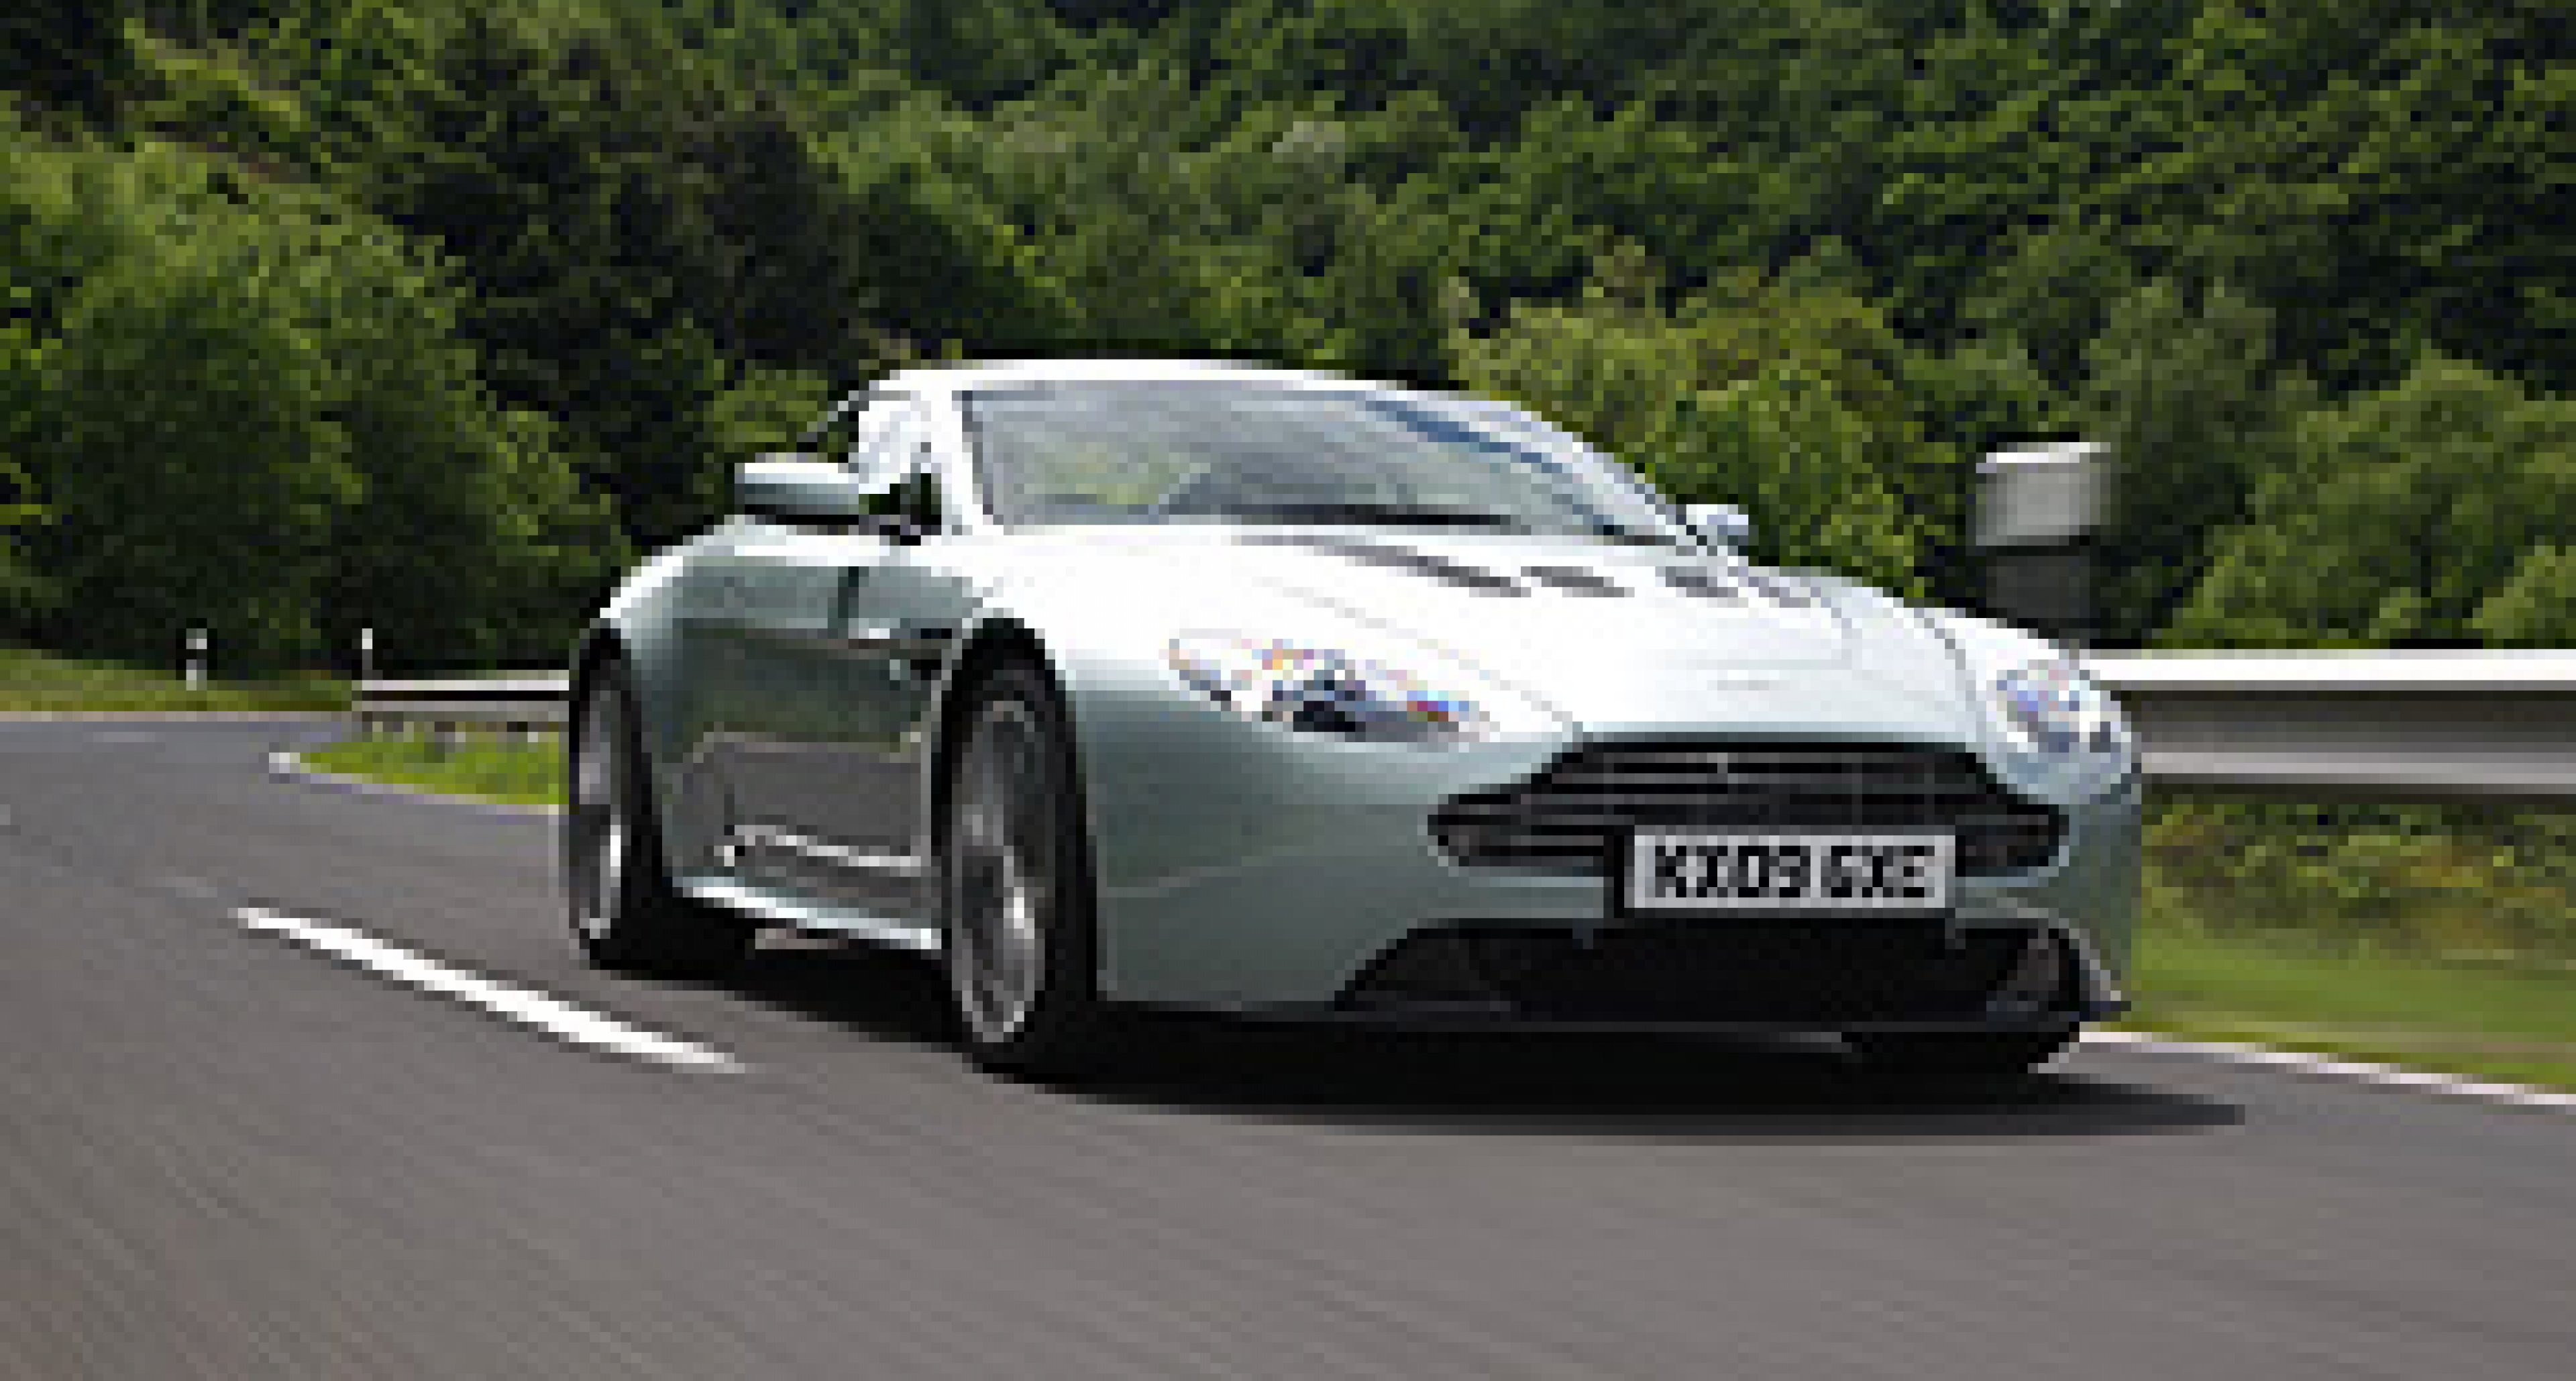 Aston Martin V12 Vantage to be Available in the Americas